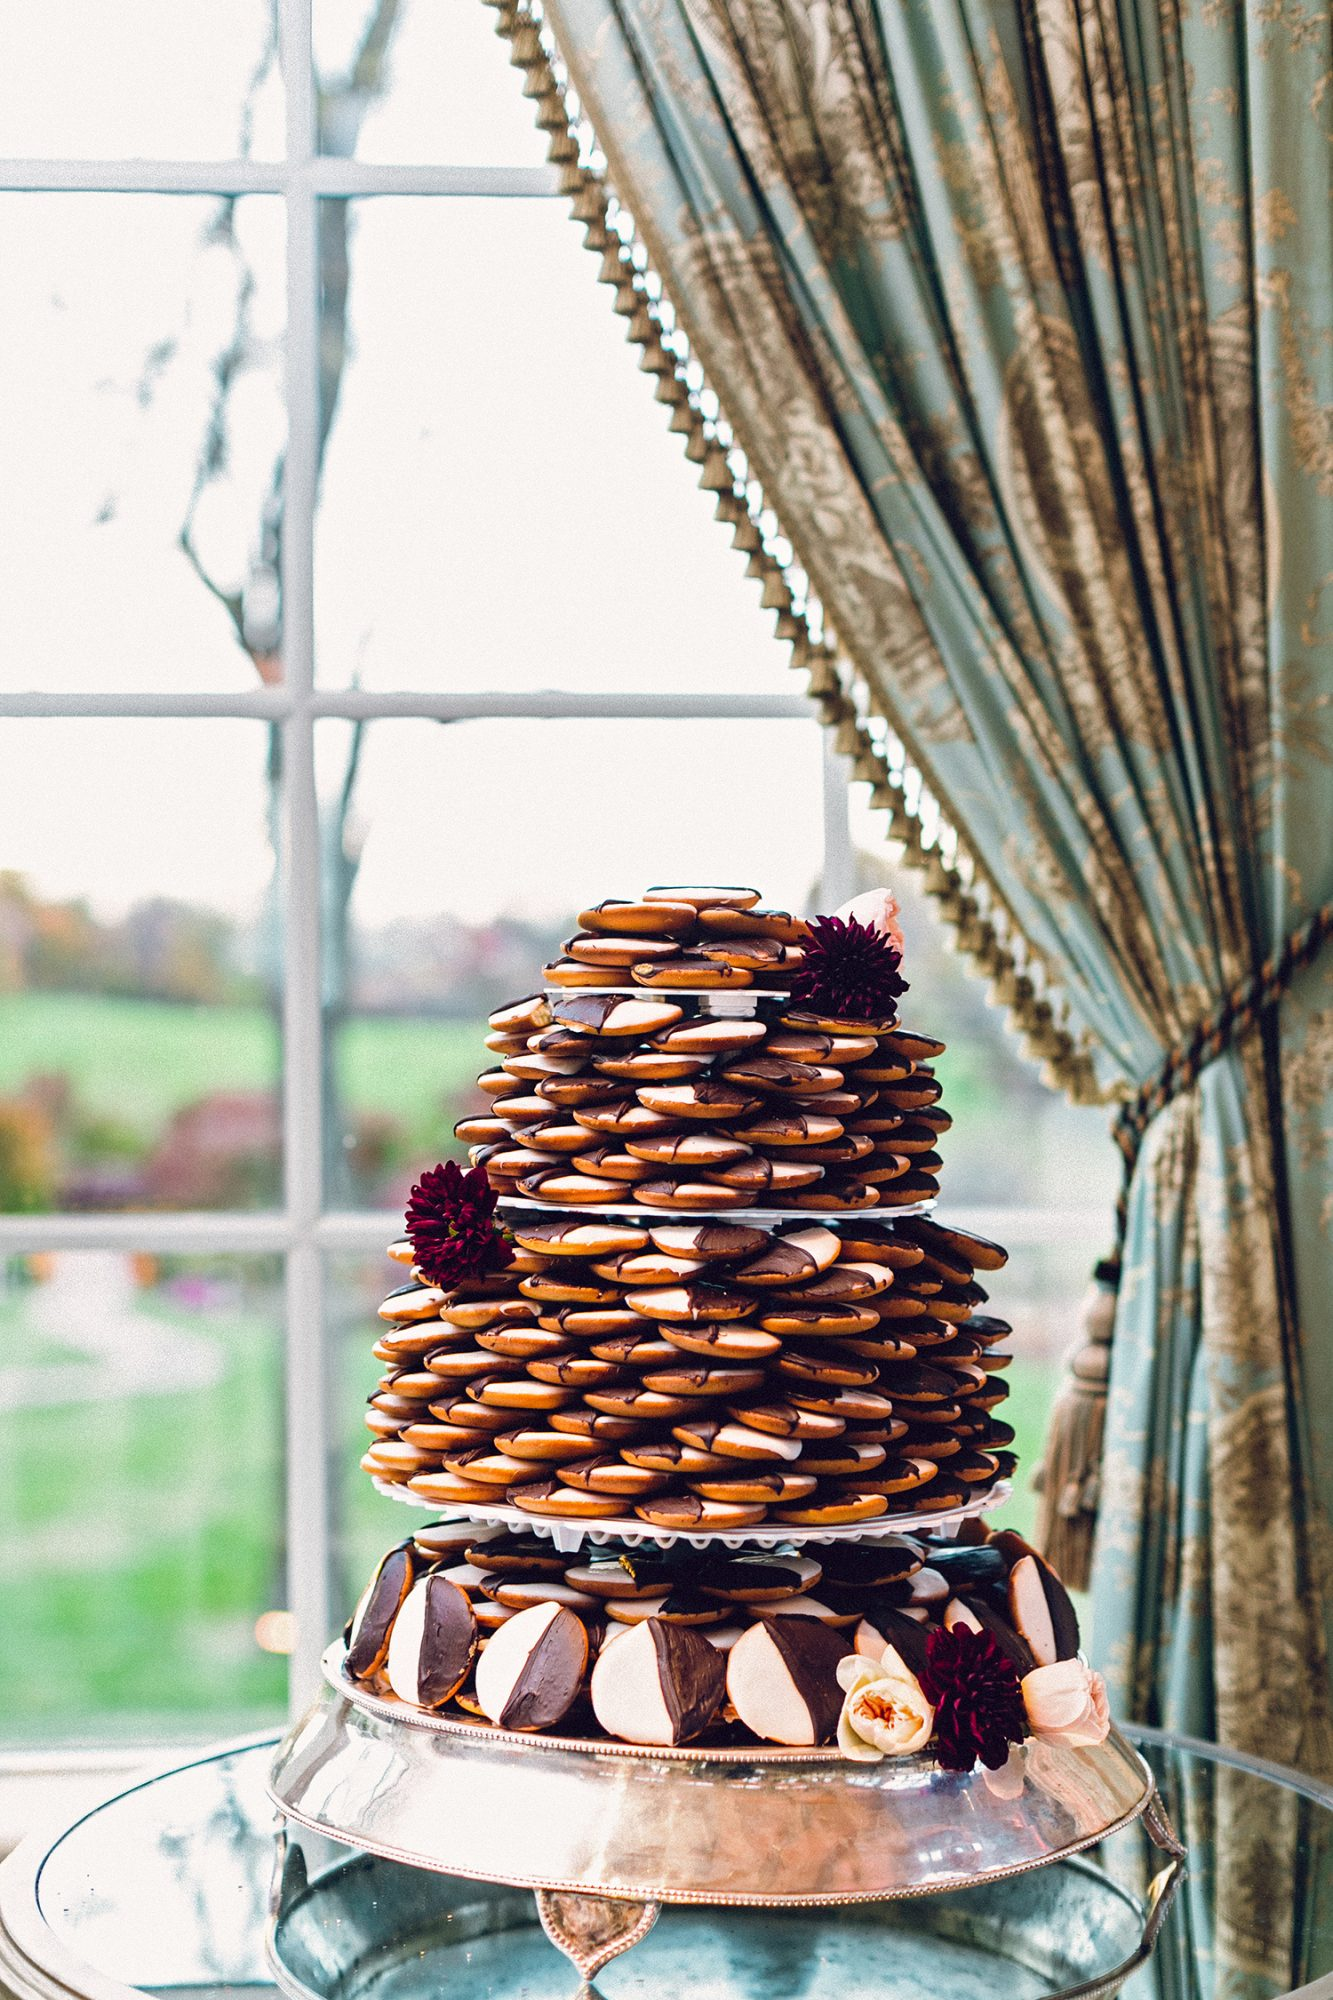 Love vanilla and chocolate equally, but don't feel like a traditional wedding cake fits your vibe as a couple? Take a hint from this smart duo, who arranged a tower of black-and-white cookies into a cake shape.